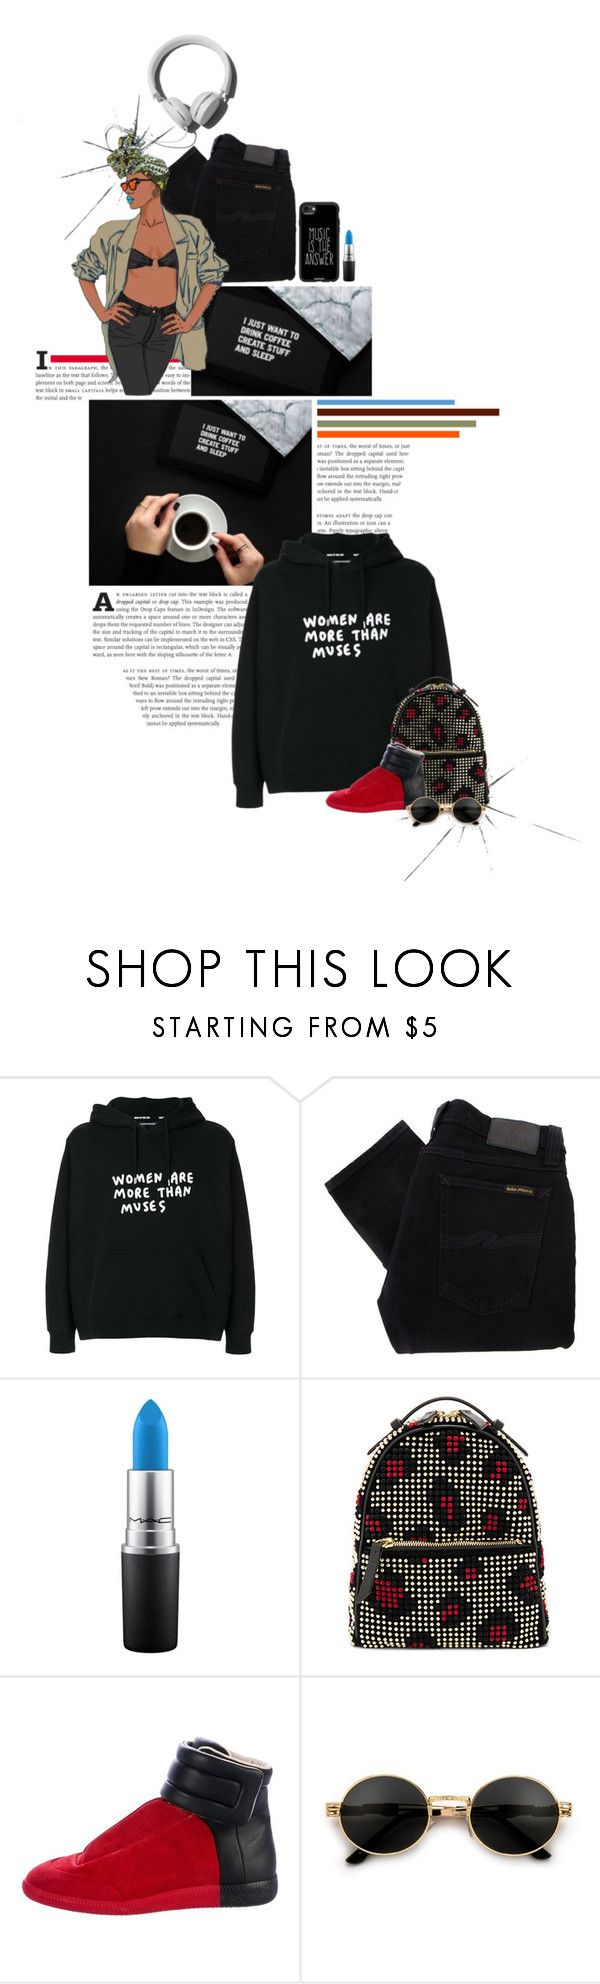 """""""Women are more than muses..."""" by po8grl ❤ liked on Polyvore featuring Garance Doré, House of Holland, Nudie Jeans Co., Les Petits Joueurs, Maison Margiela, Casetify, womensHistoryMonth, pressforprogress and GirlPride"""